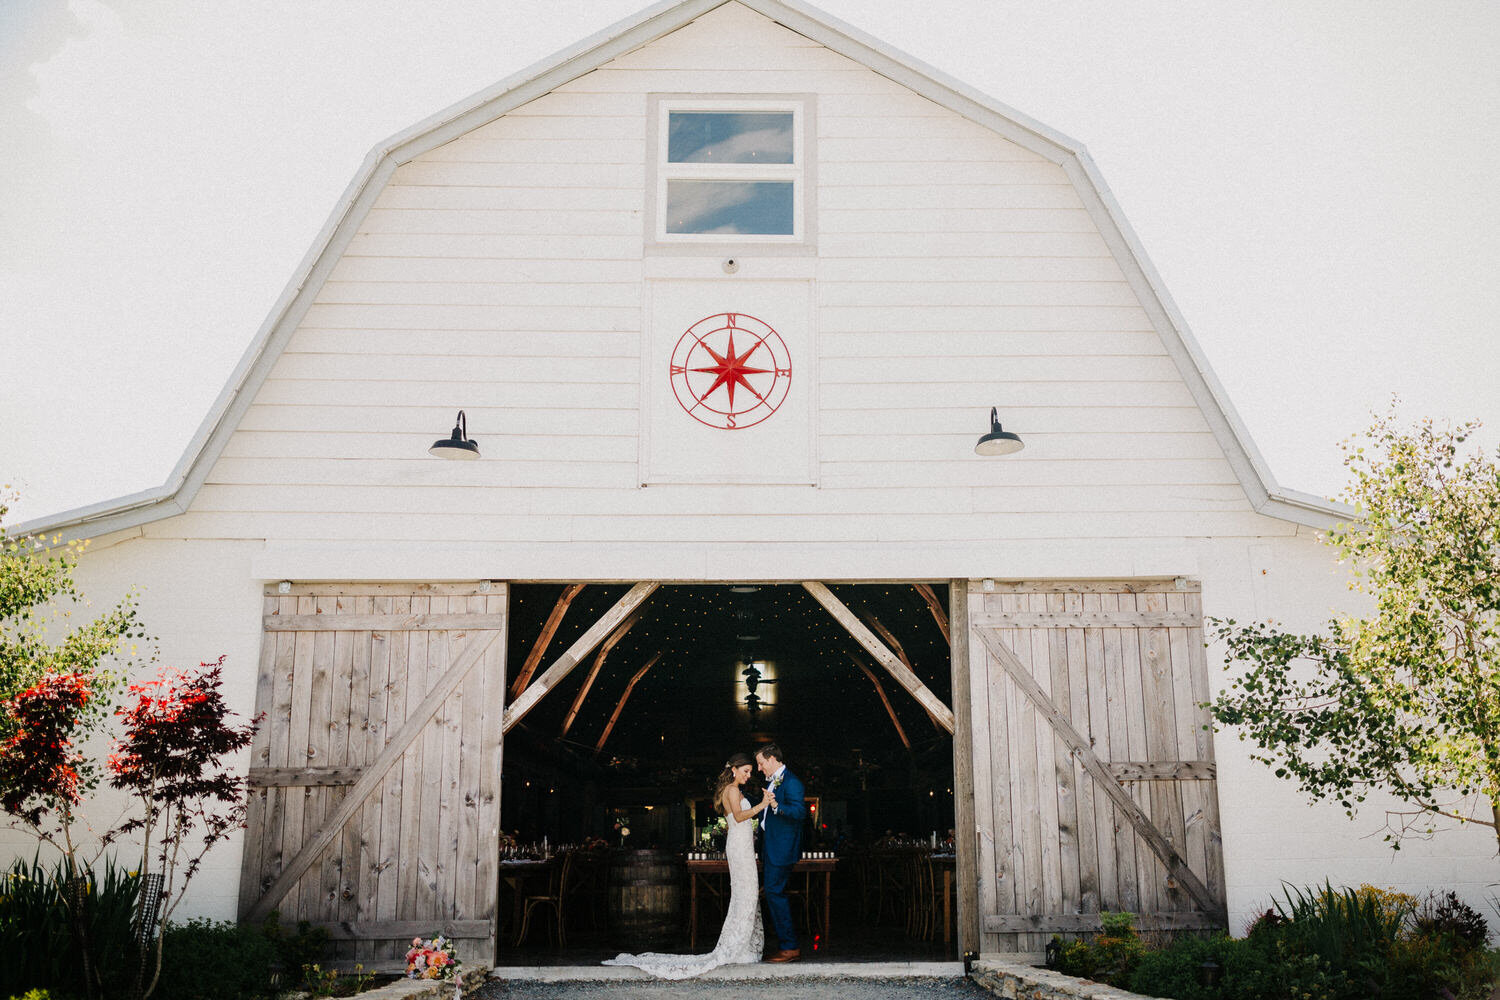 A wedding couple is holding each other and is standing at the Overlook Barn in North Carolina.